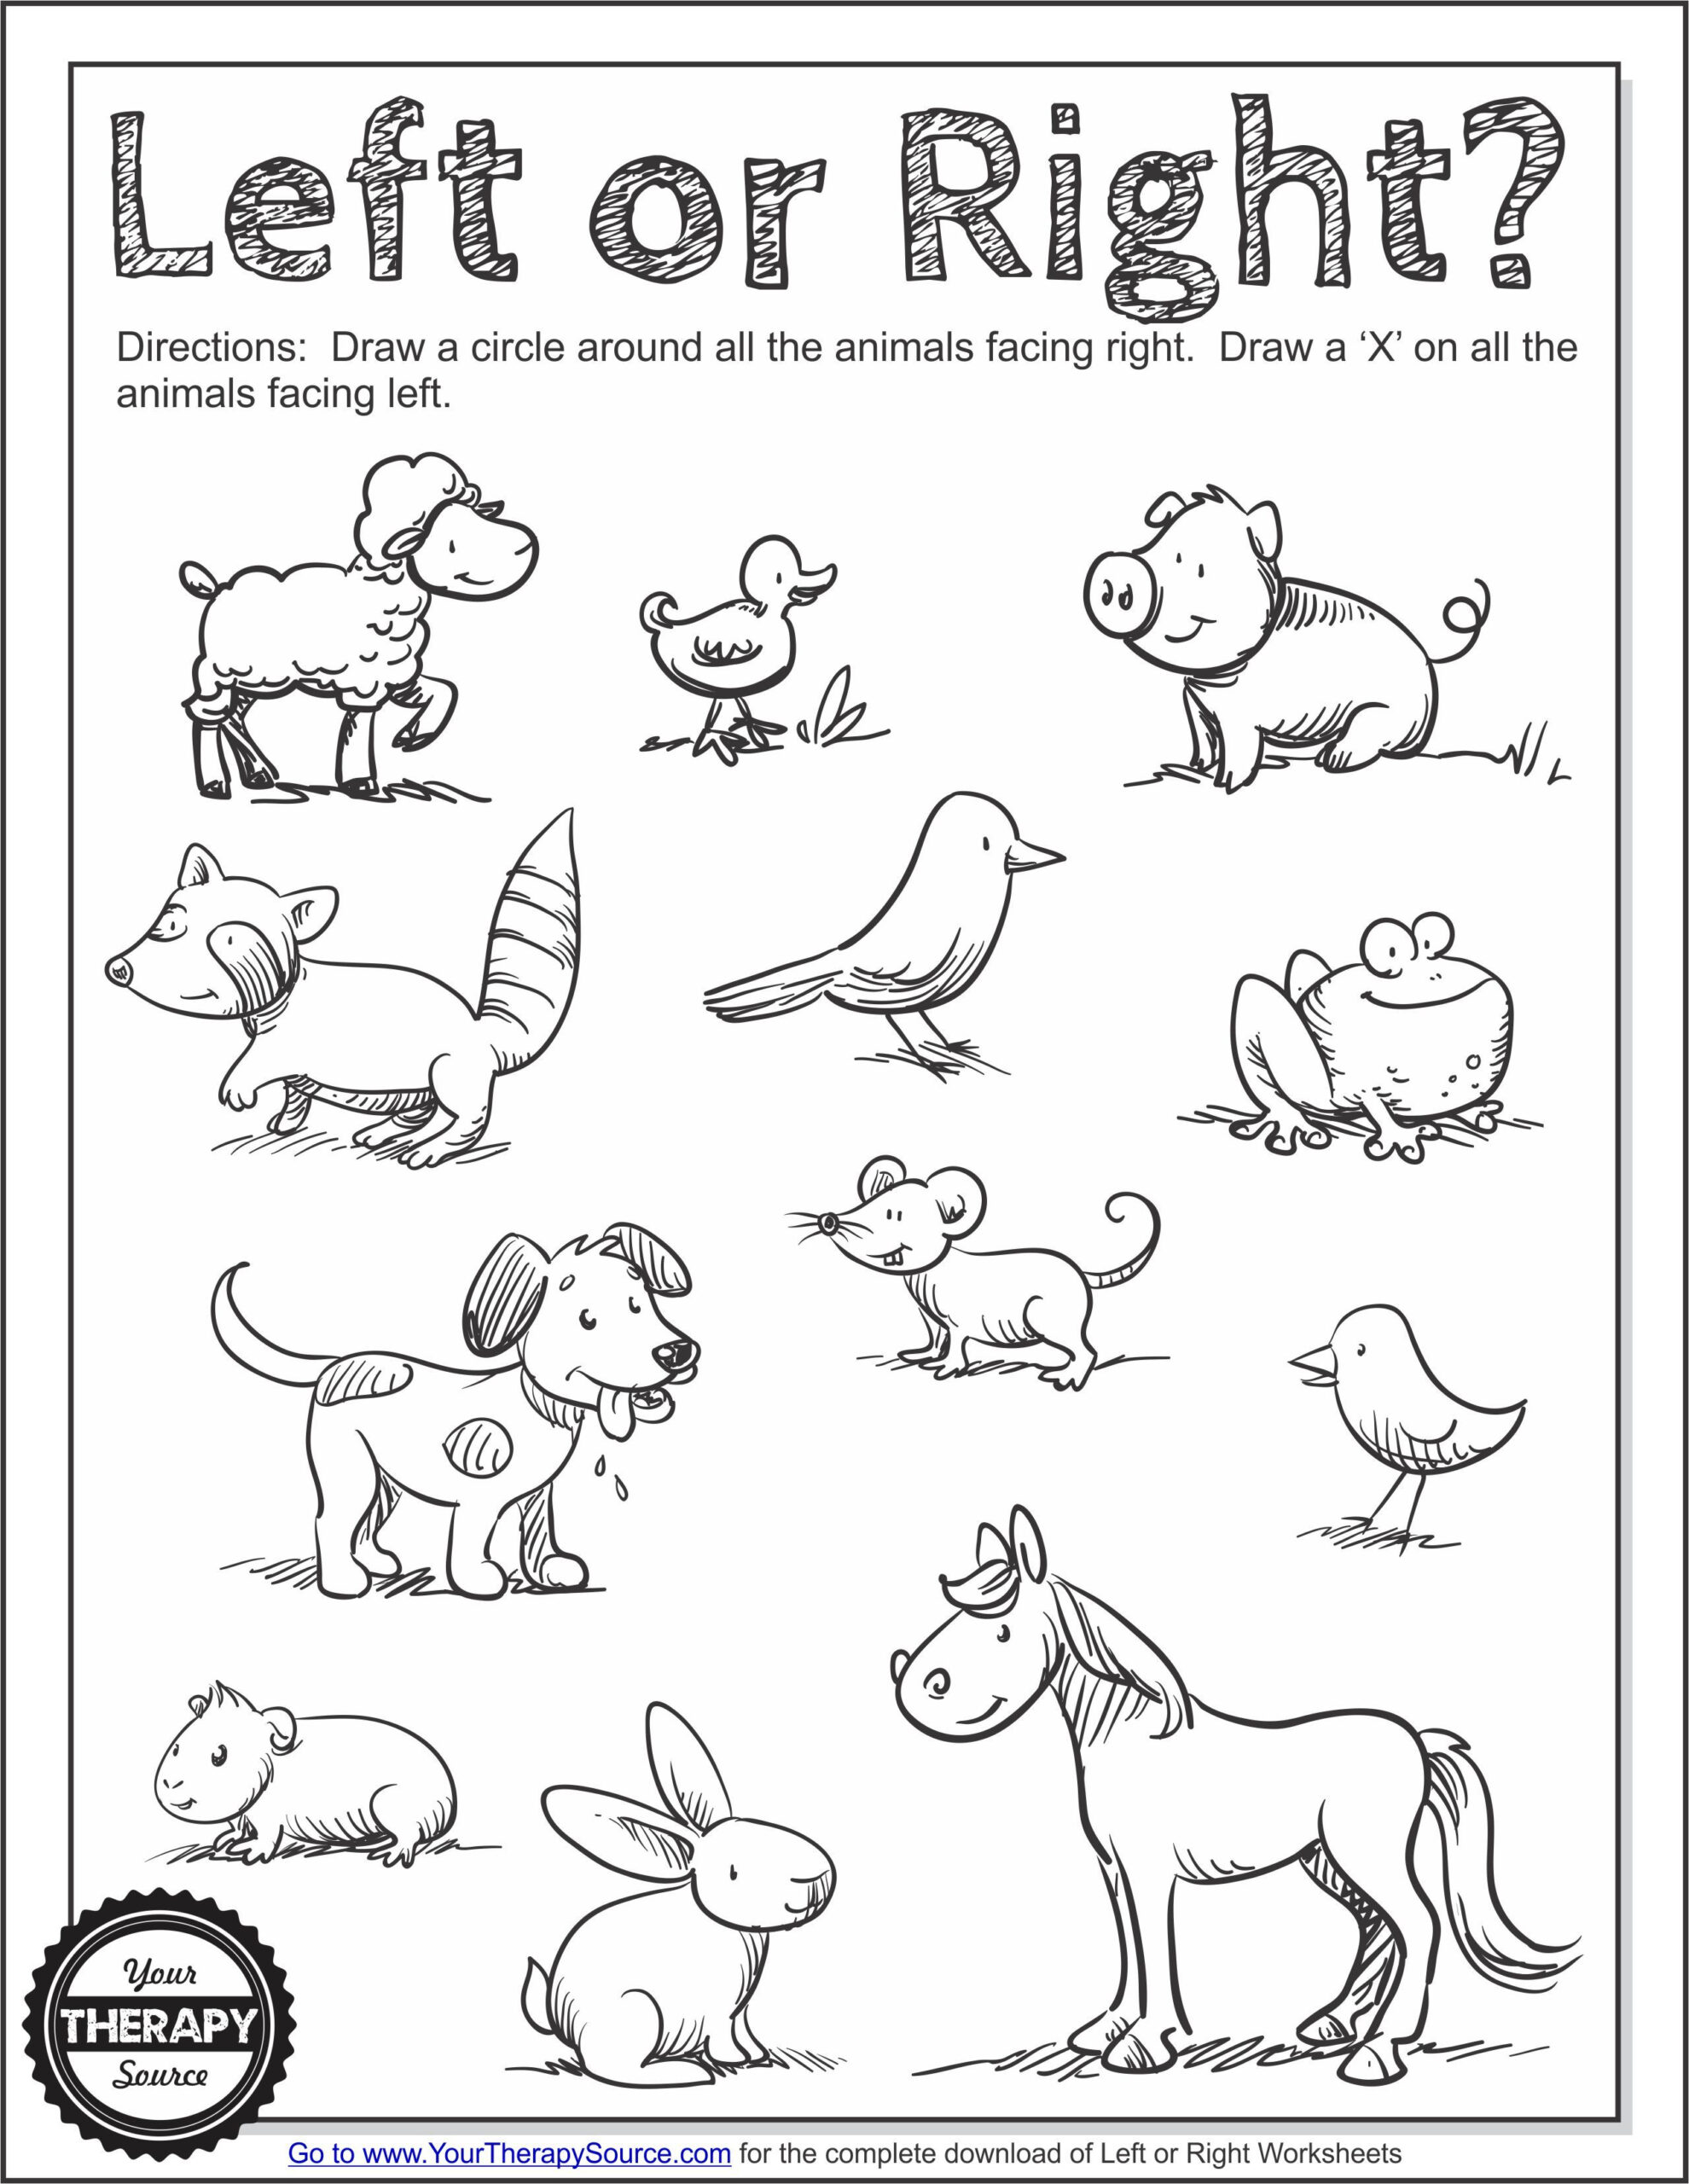 Left Or Right Worksheets - Laterality Directionality - Your